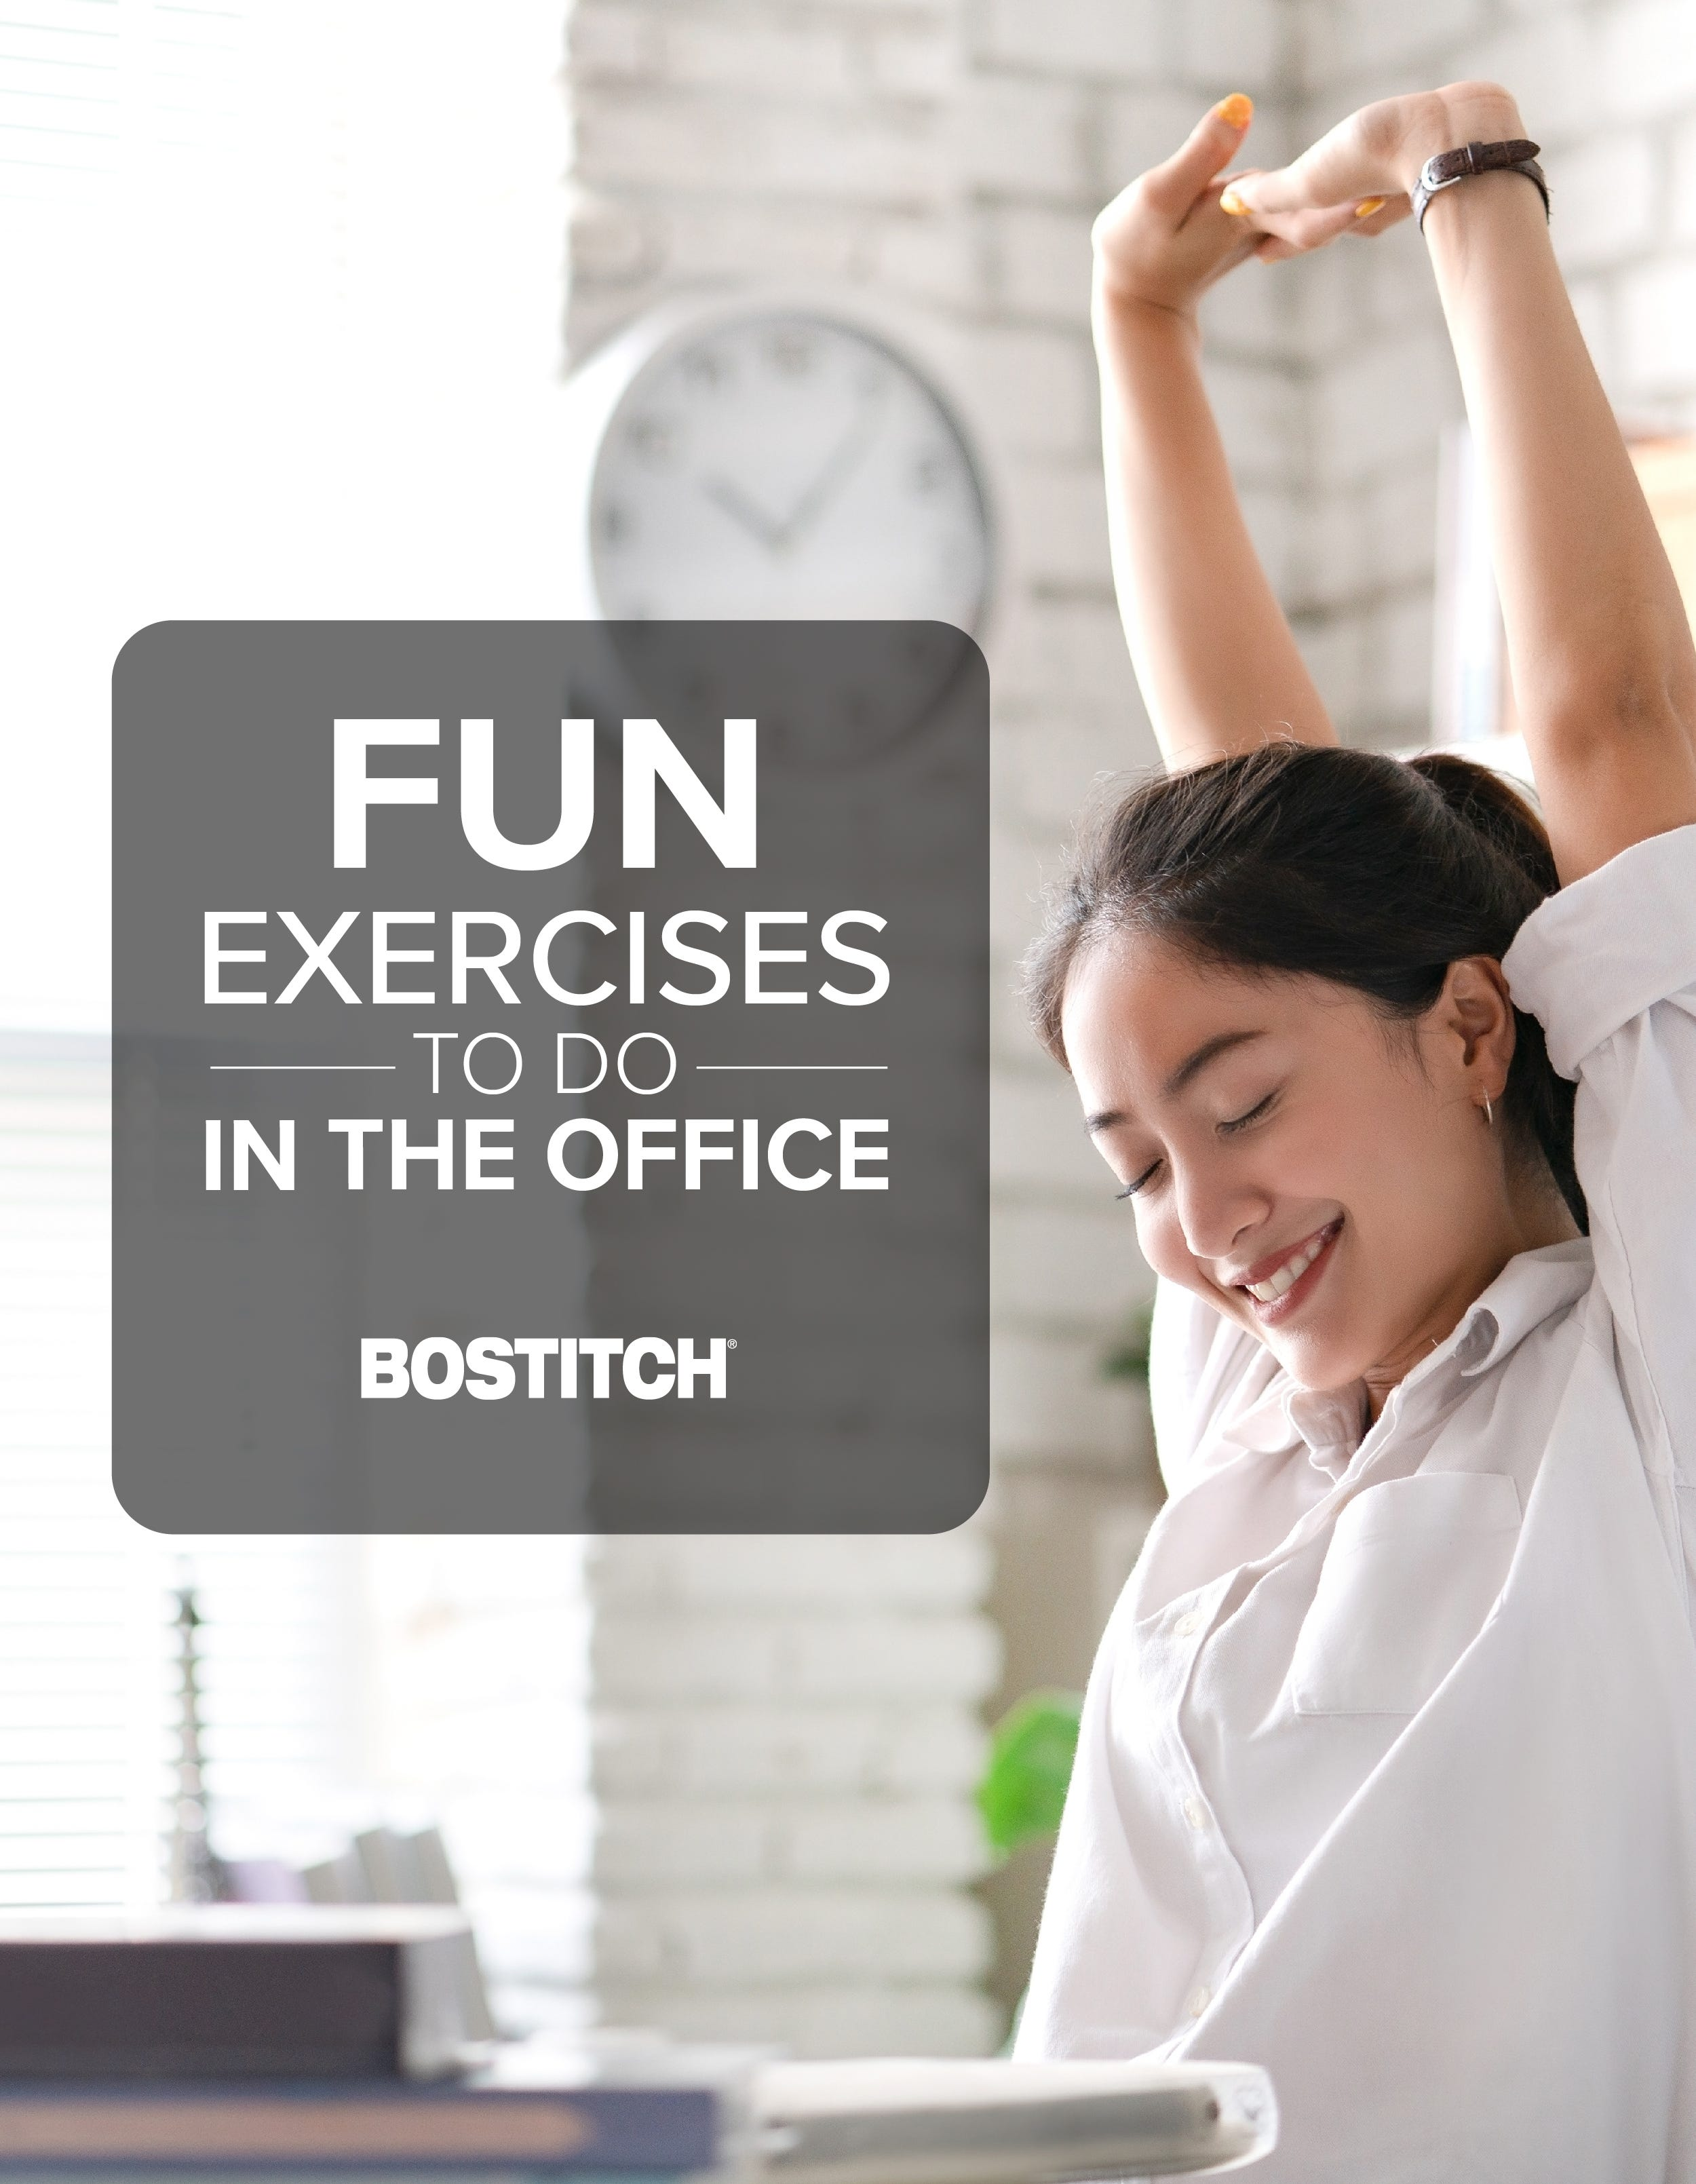 Fun Exercises to Do in the Office Pinterest